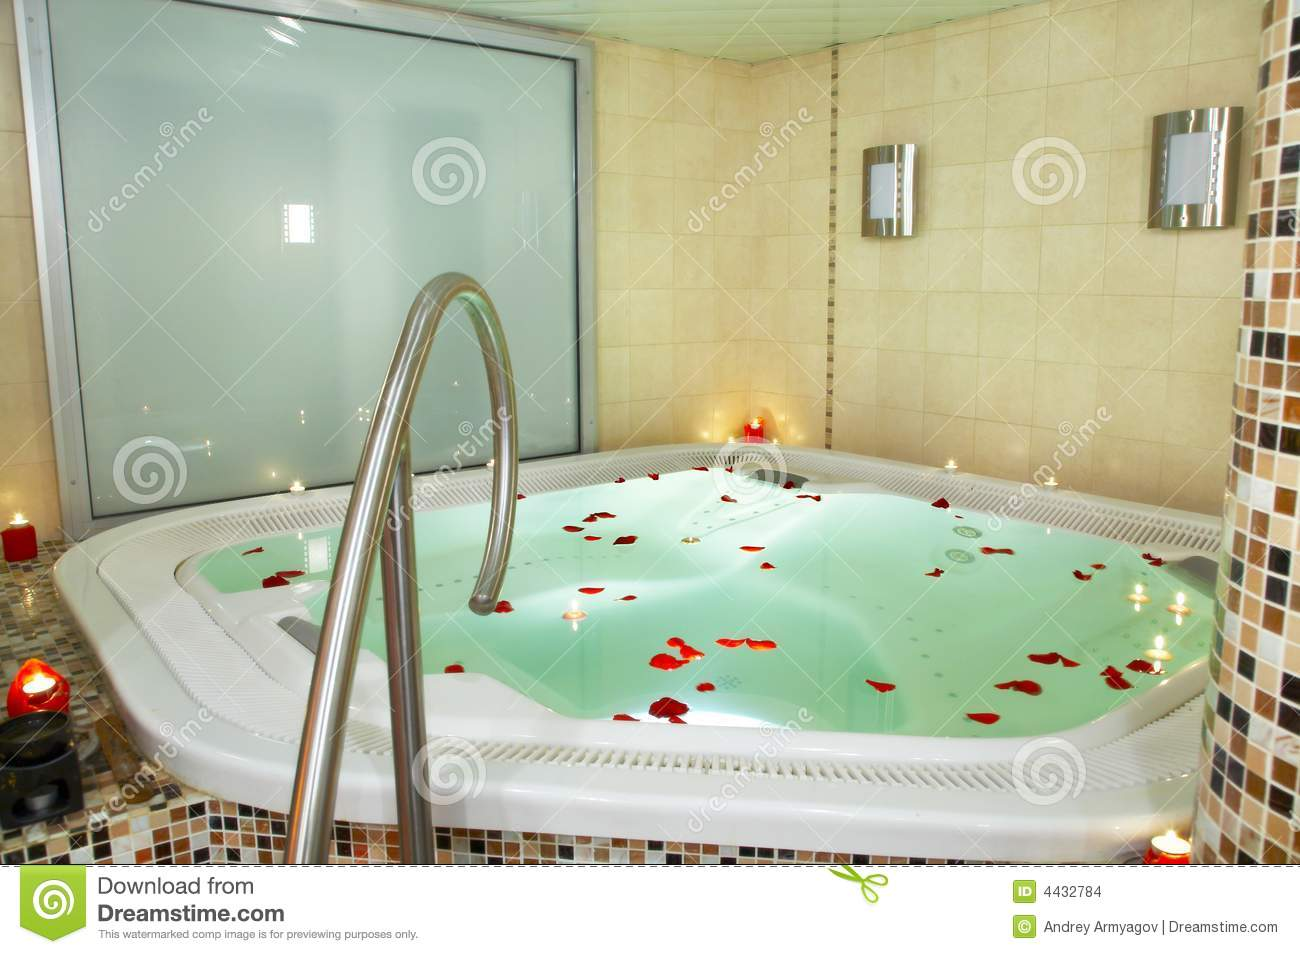 Bath of a jacuzzi stock photo. Image of heat, green, rose - 4432784